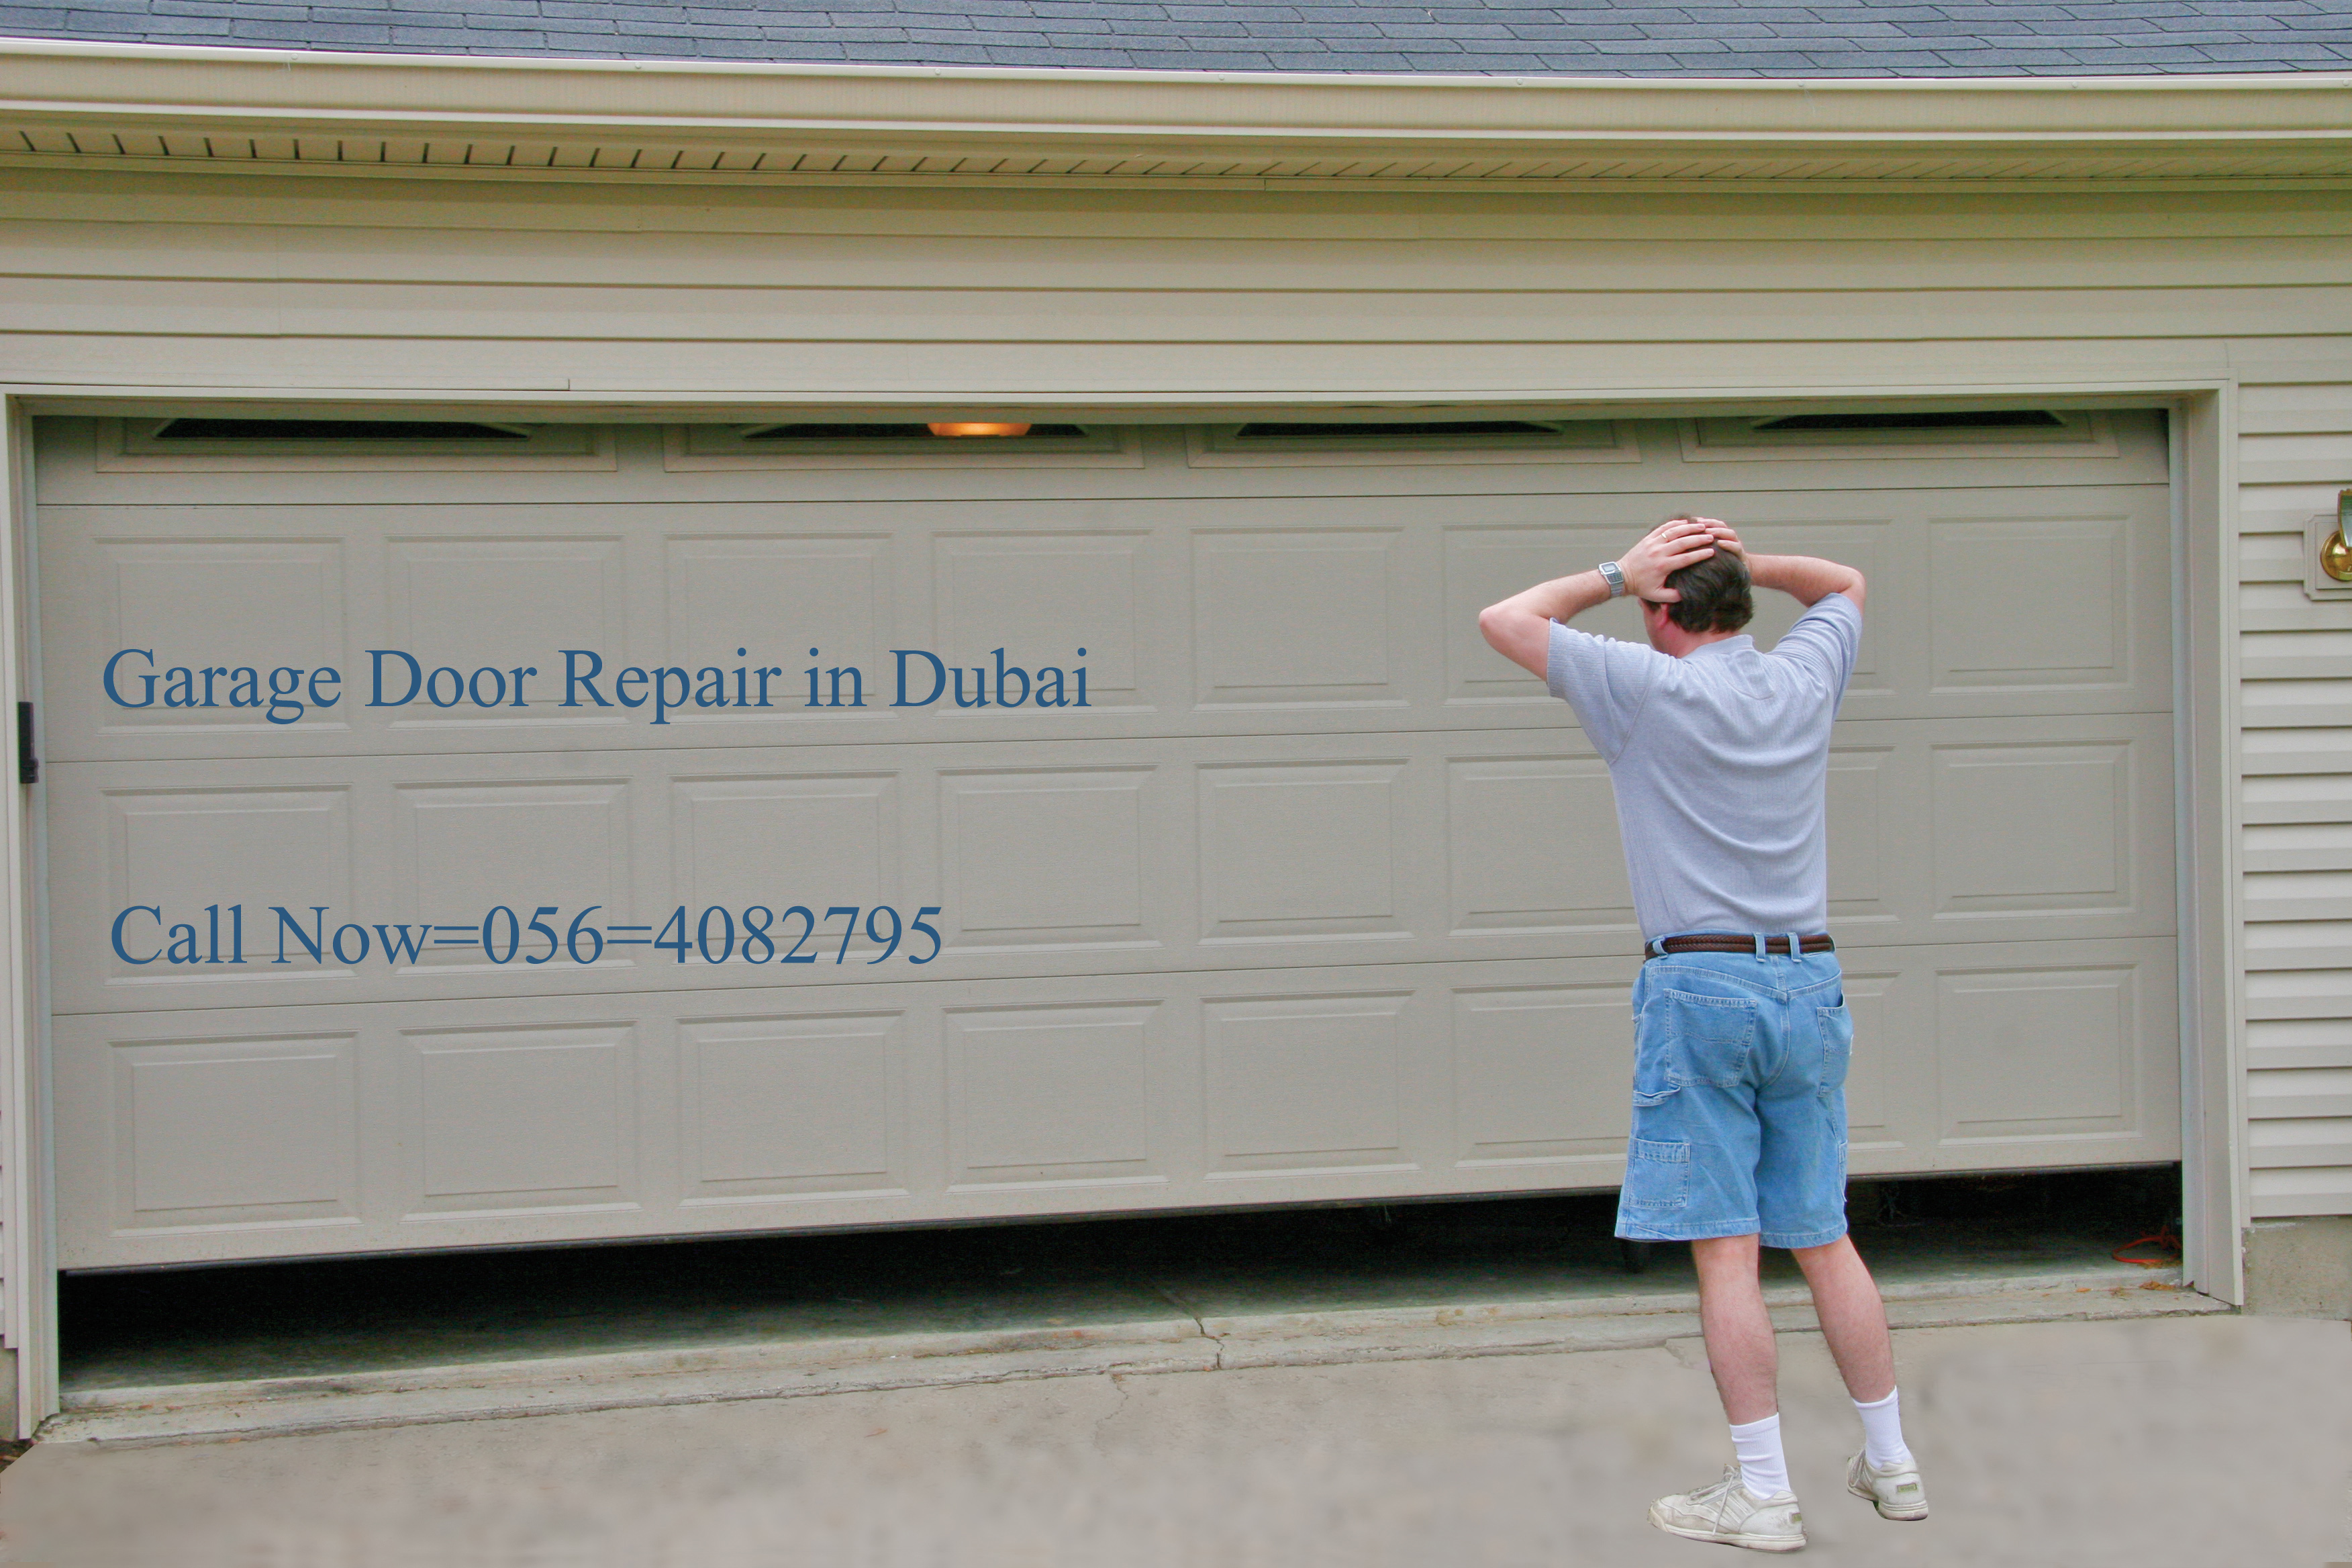 Automatic Garage Door Repair in Dubai